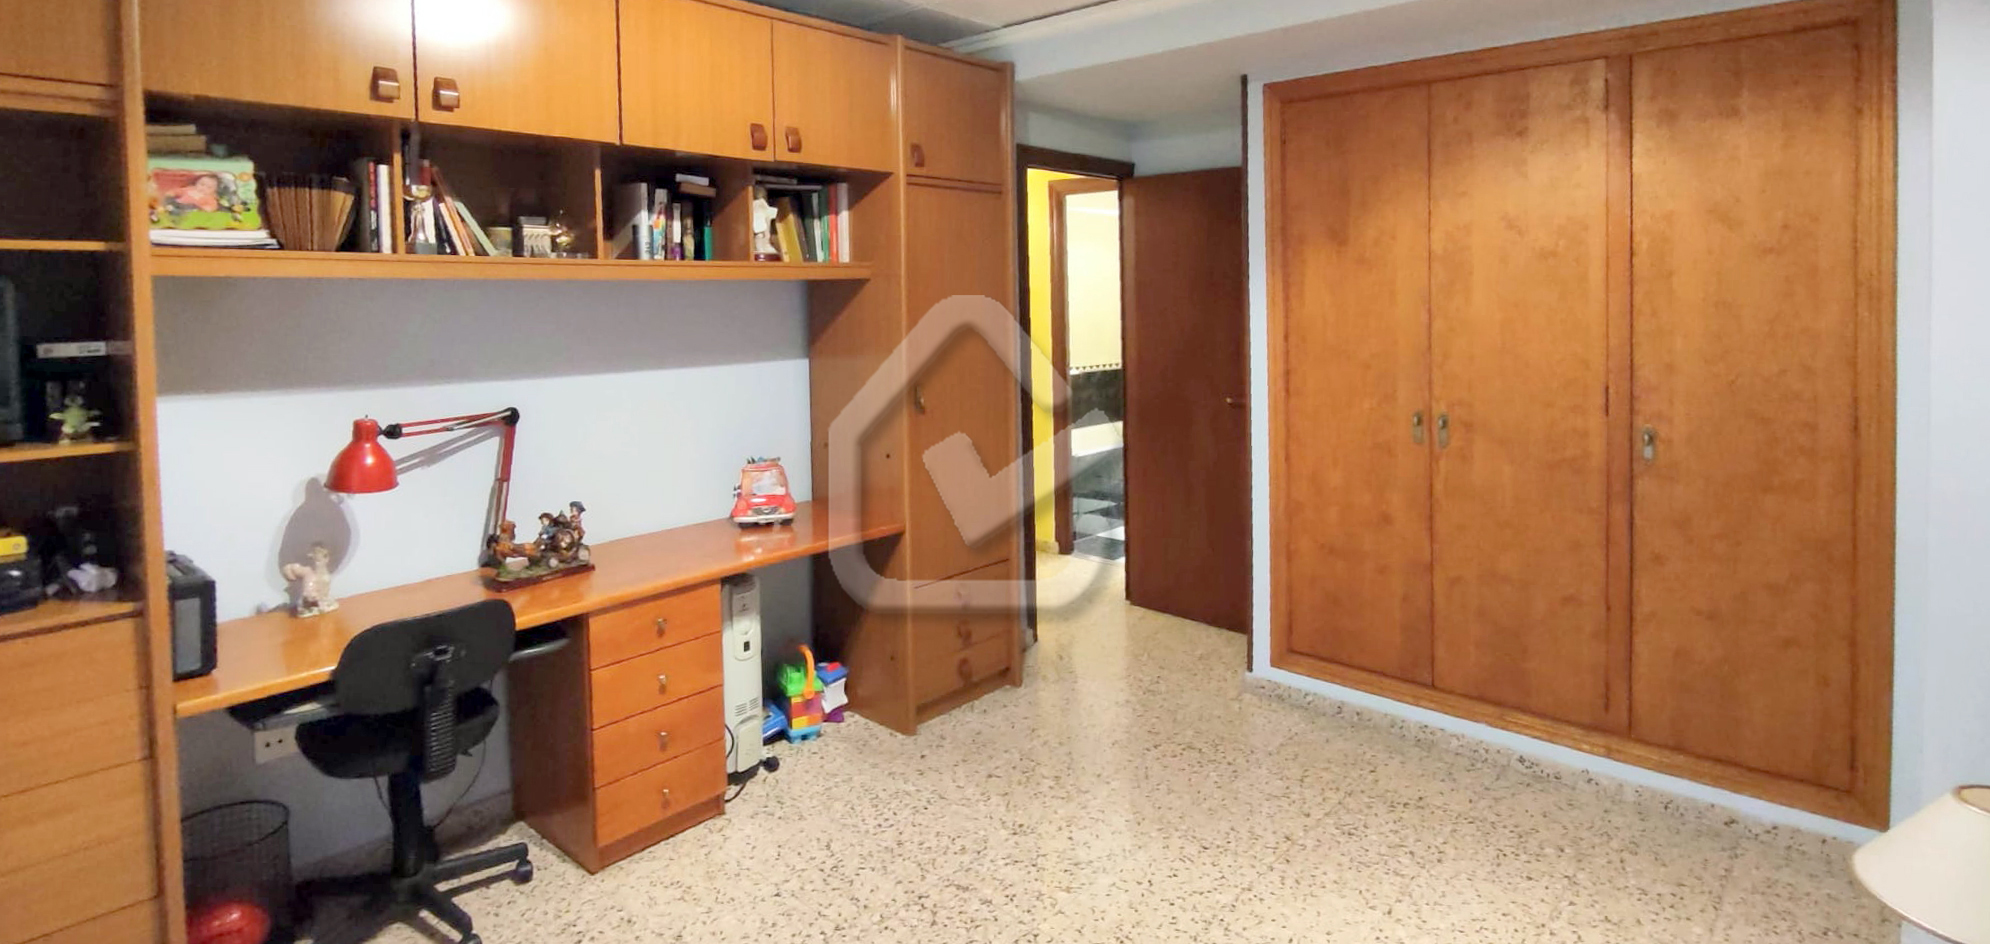 Photo  number 16: Flat / Apartment in Sale in Denia, Area Casco urbano, Sector Centro. Ref. 5-40-14951